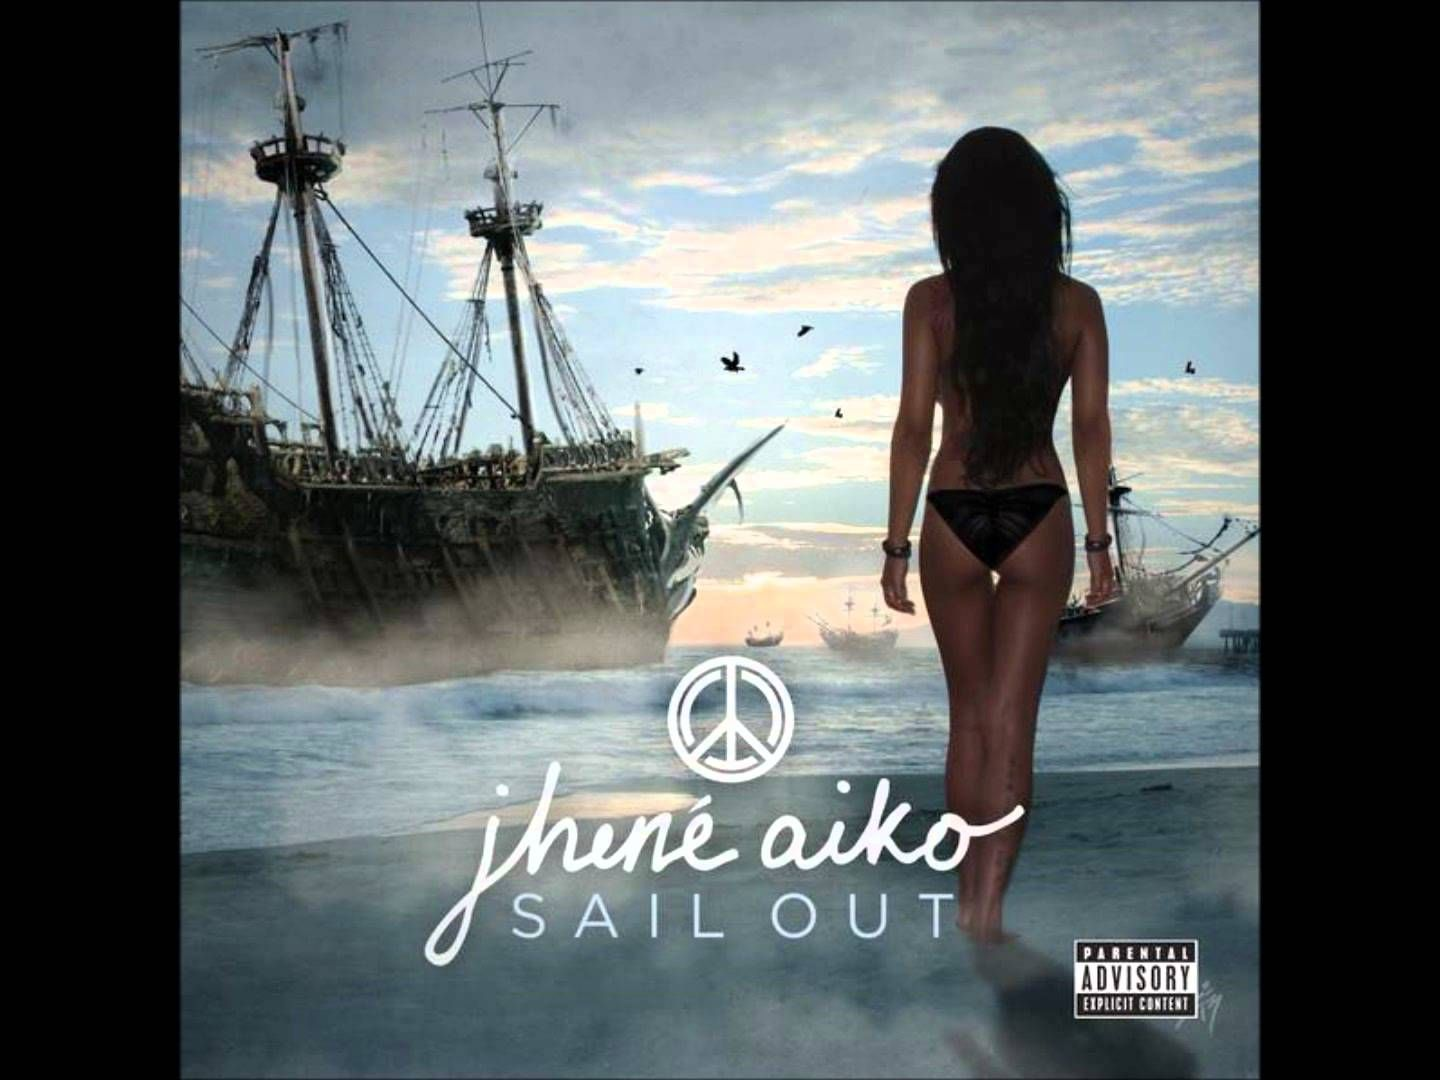 The Vapors (feat. Vince Staples) - Jhene Aiko - Sail Out (2013 EP)